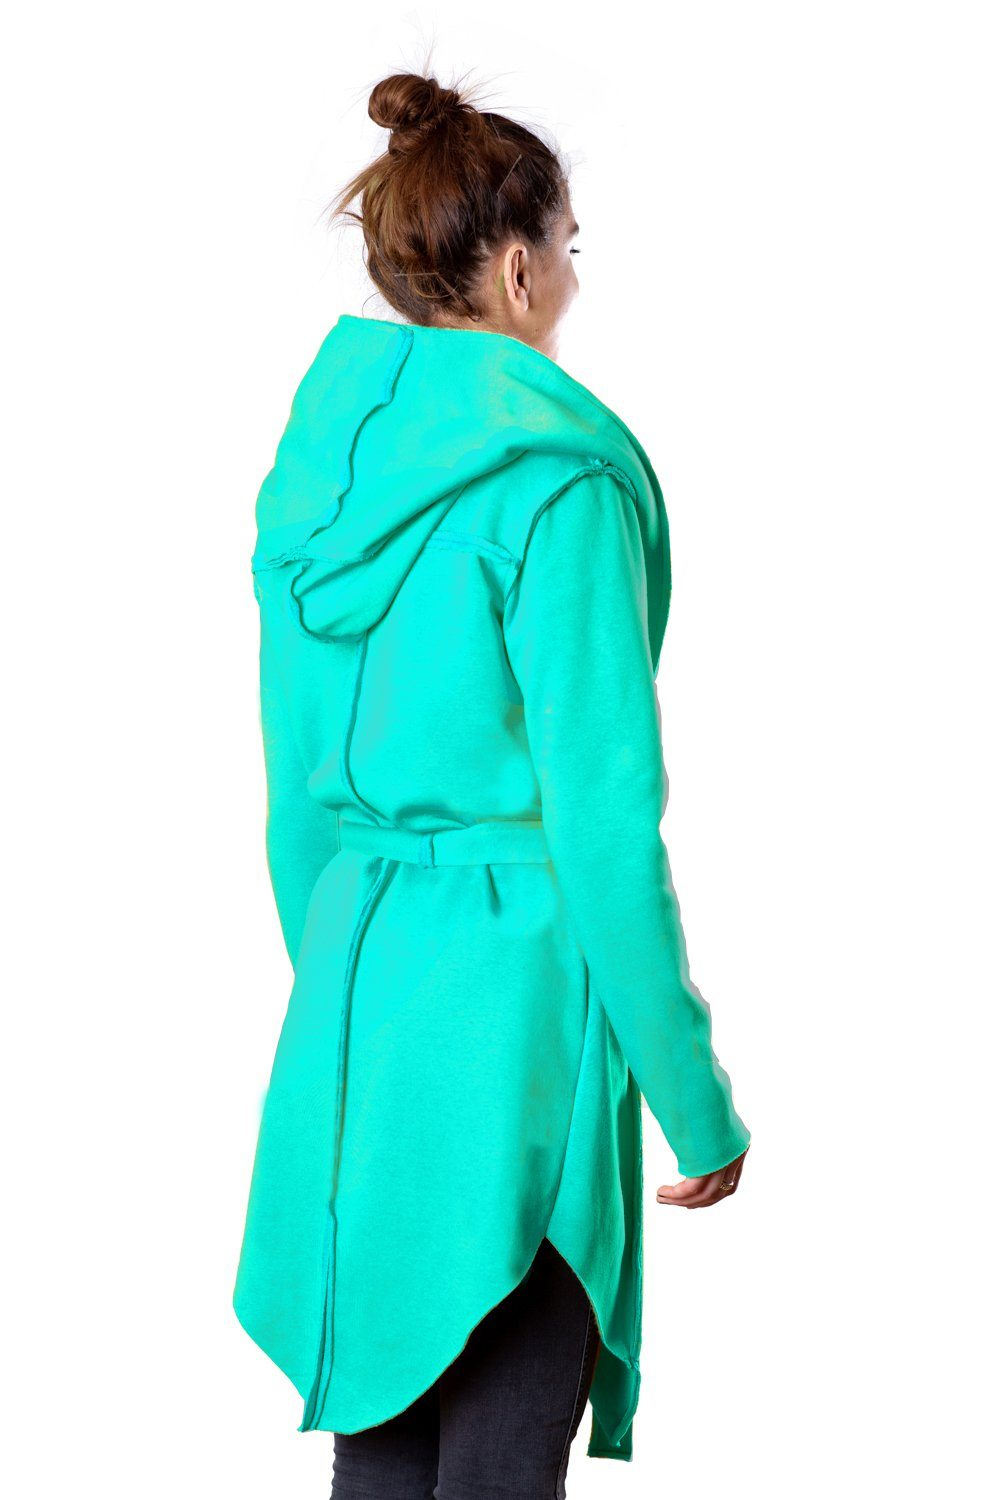 TheG Woman Designer Cardigan 2.0 // mint